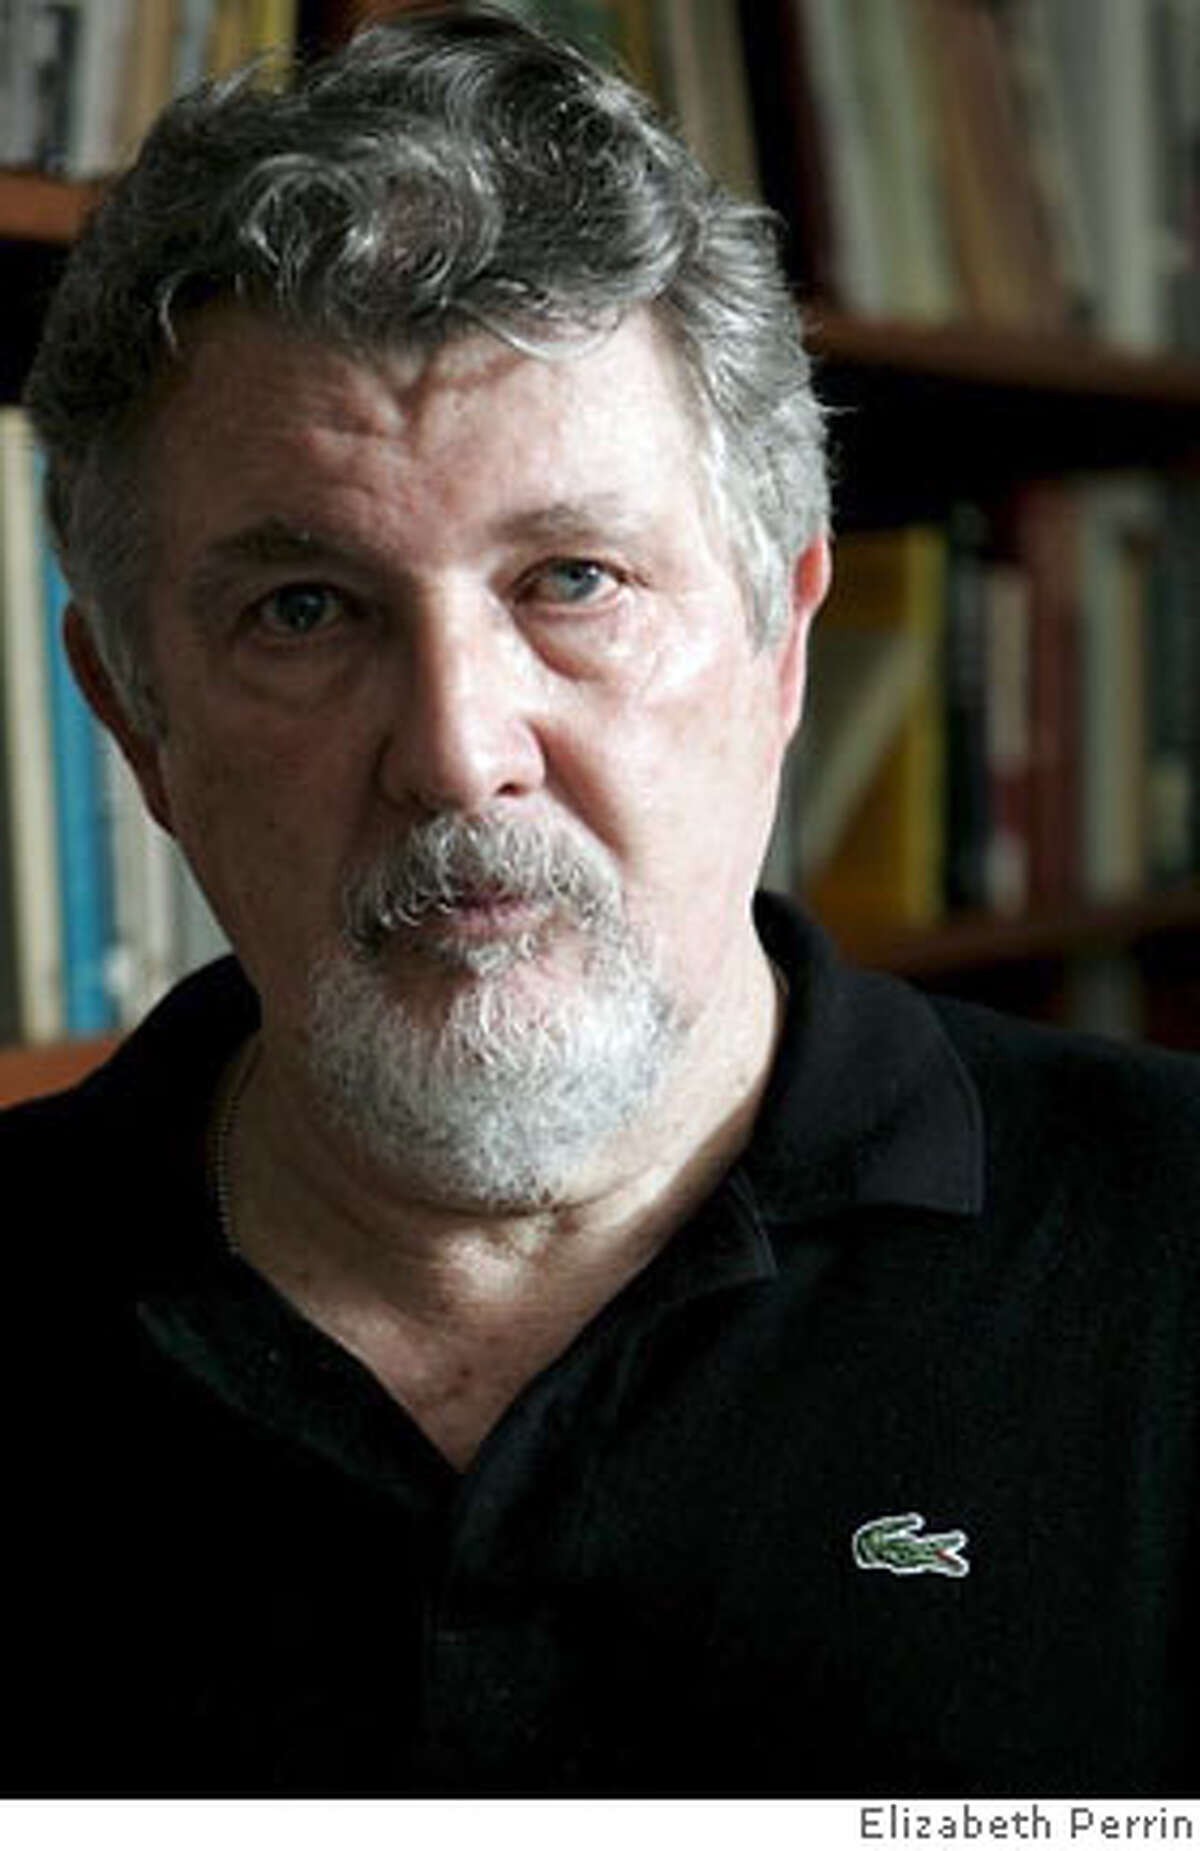 The guy pictured is film director Walter Hill, and the photog is Elizabeth Perrin.